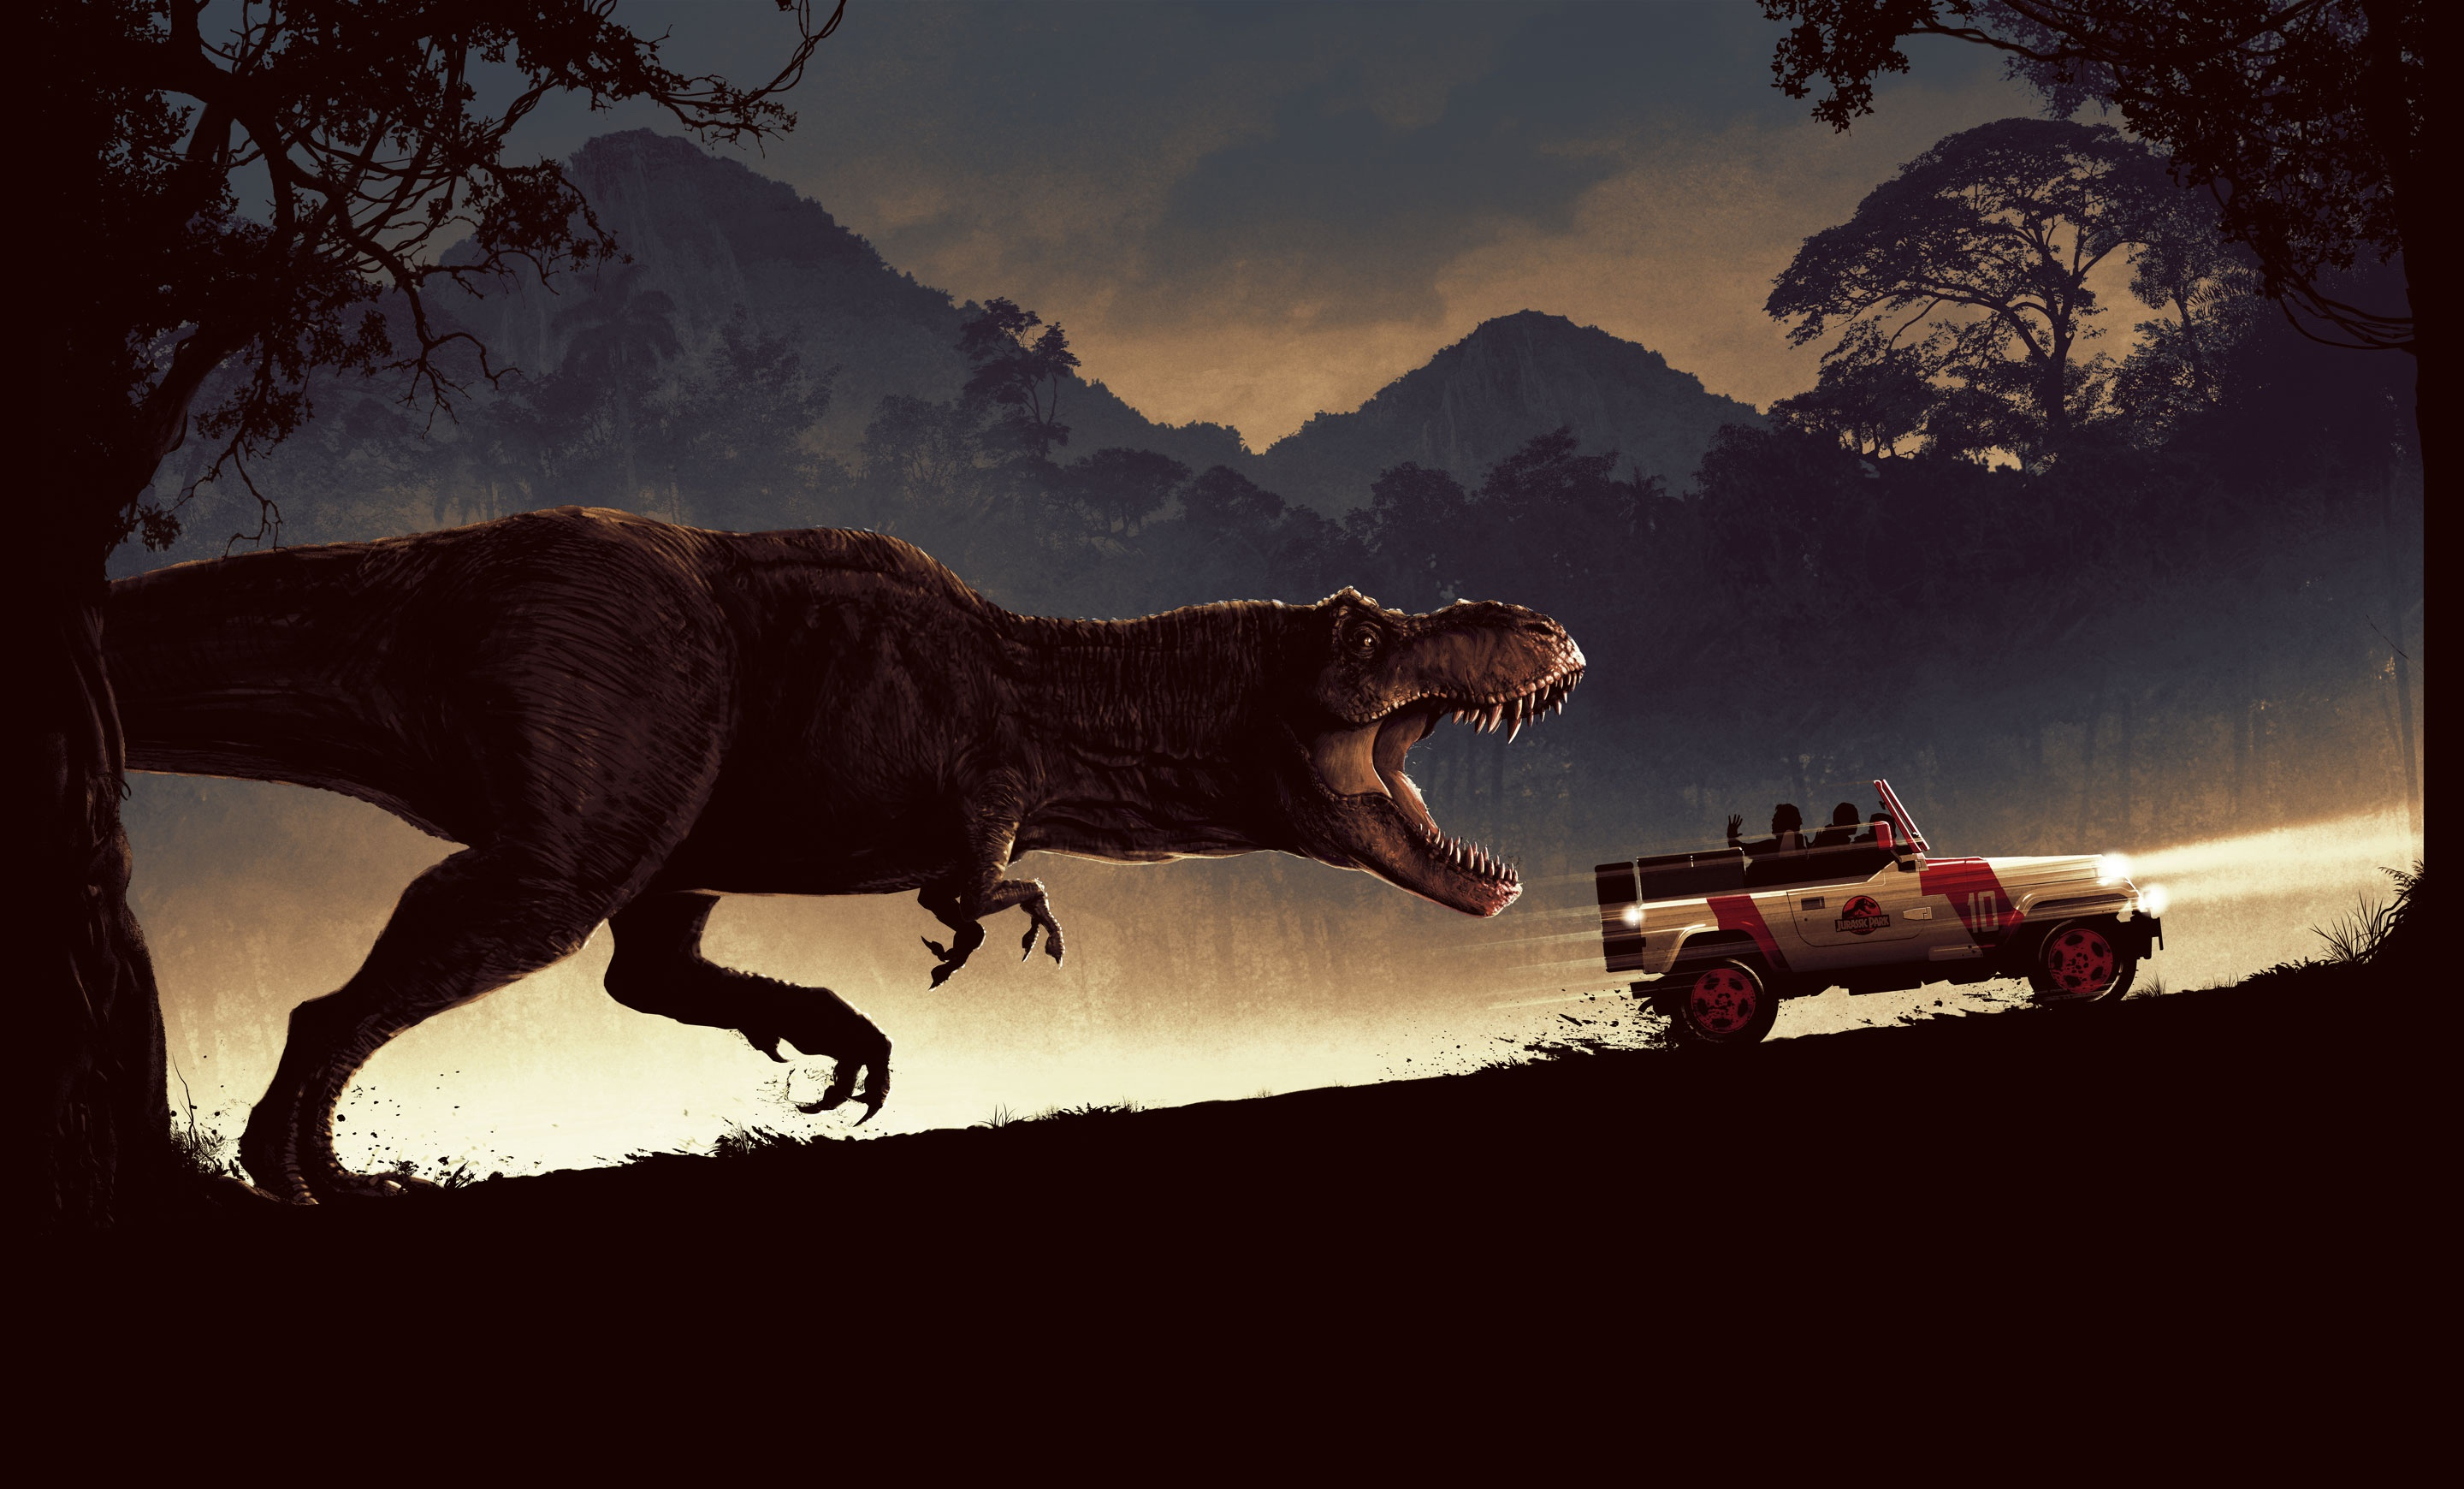 Movie Review - Jurassic Park